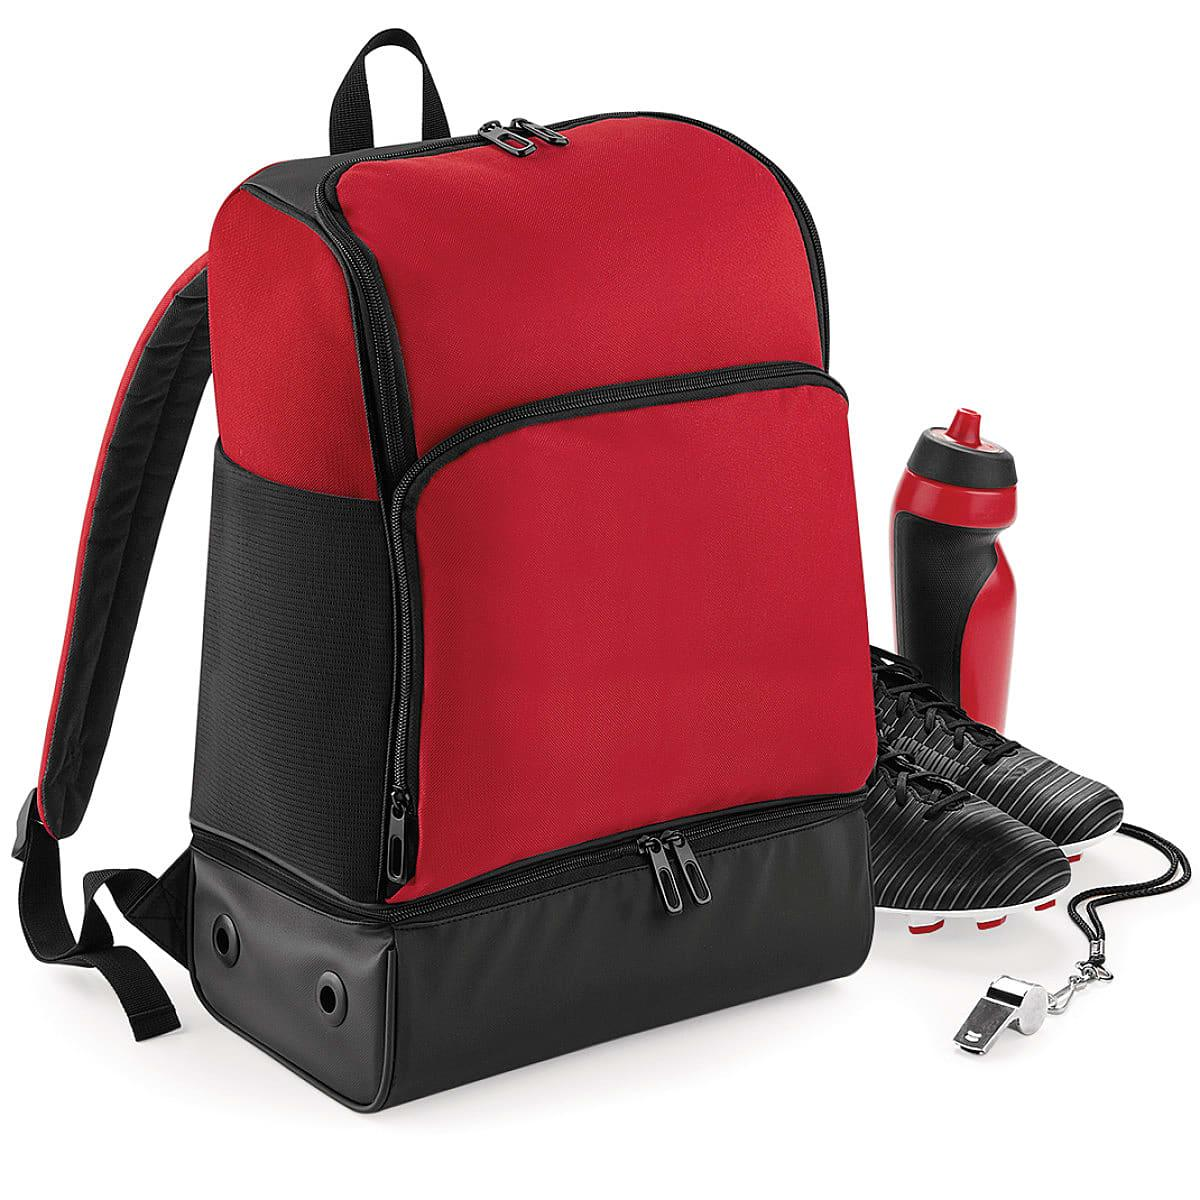 Bagbase Hardbase Sports Backpack in Classic Red / Black (Product Code: BG576)